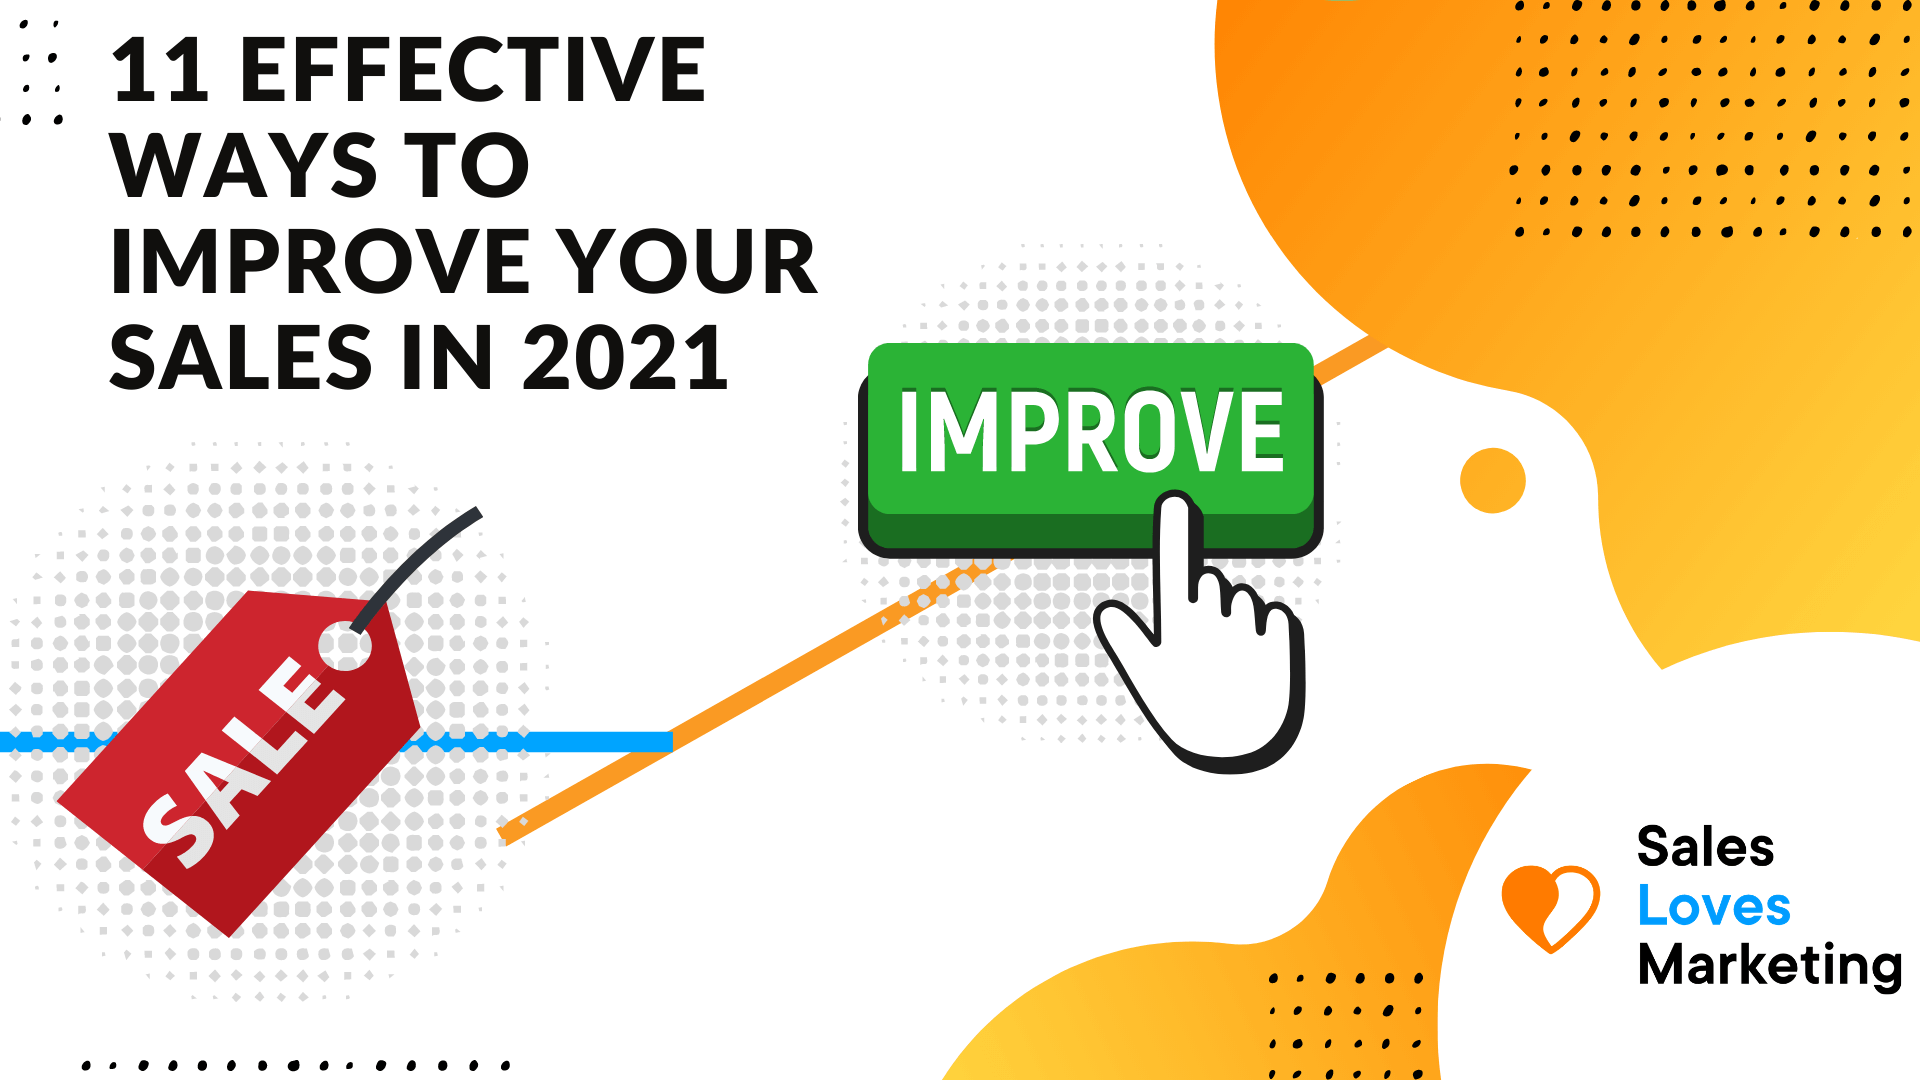 11 effective ways to increase your sales in 2021